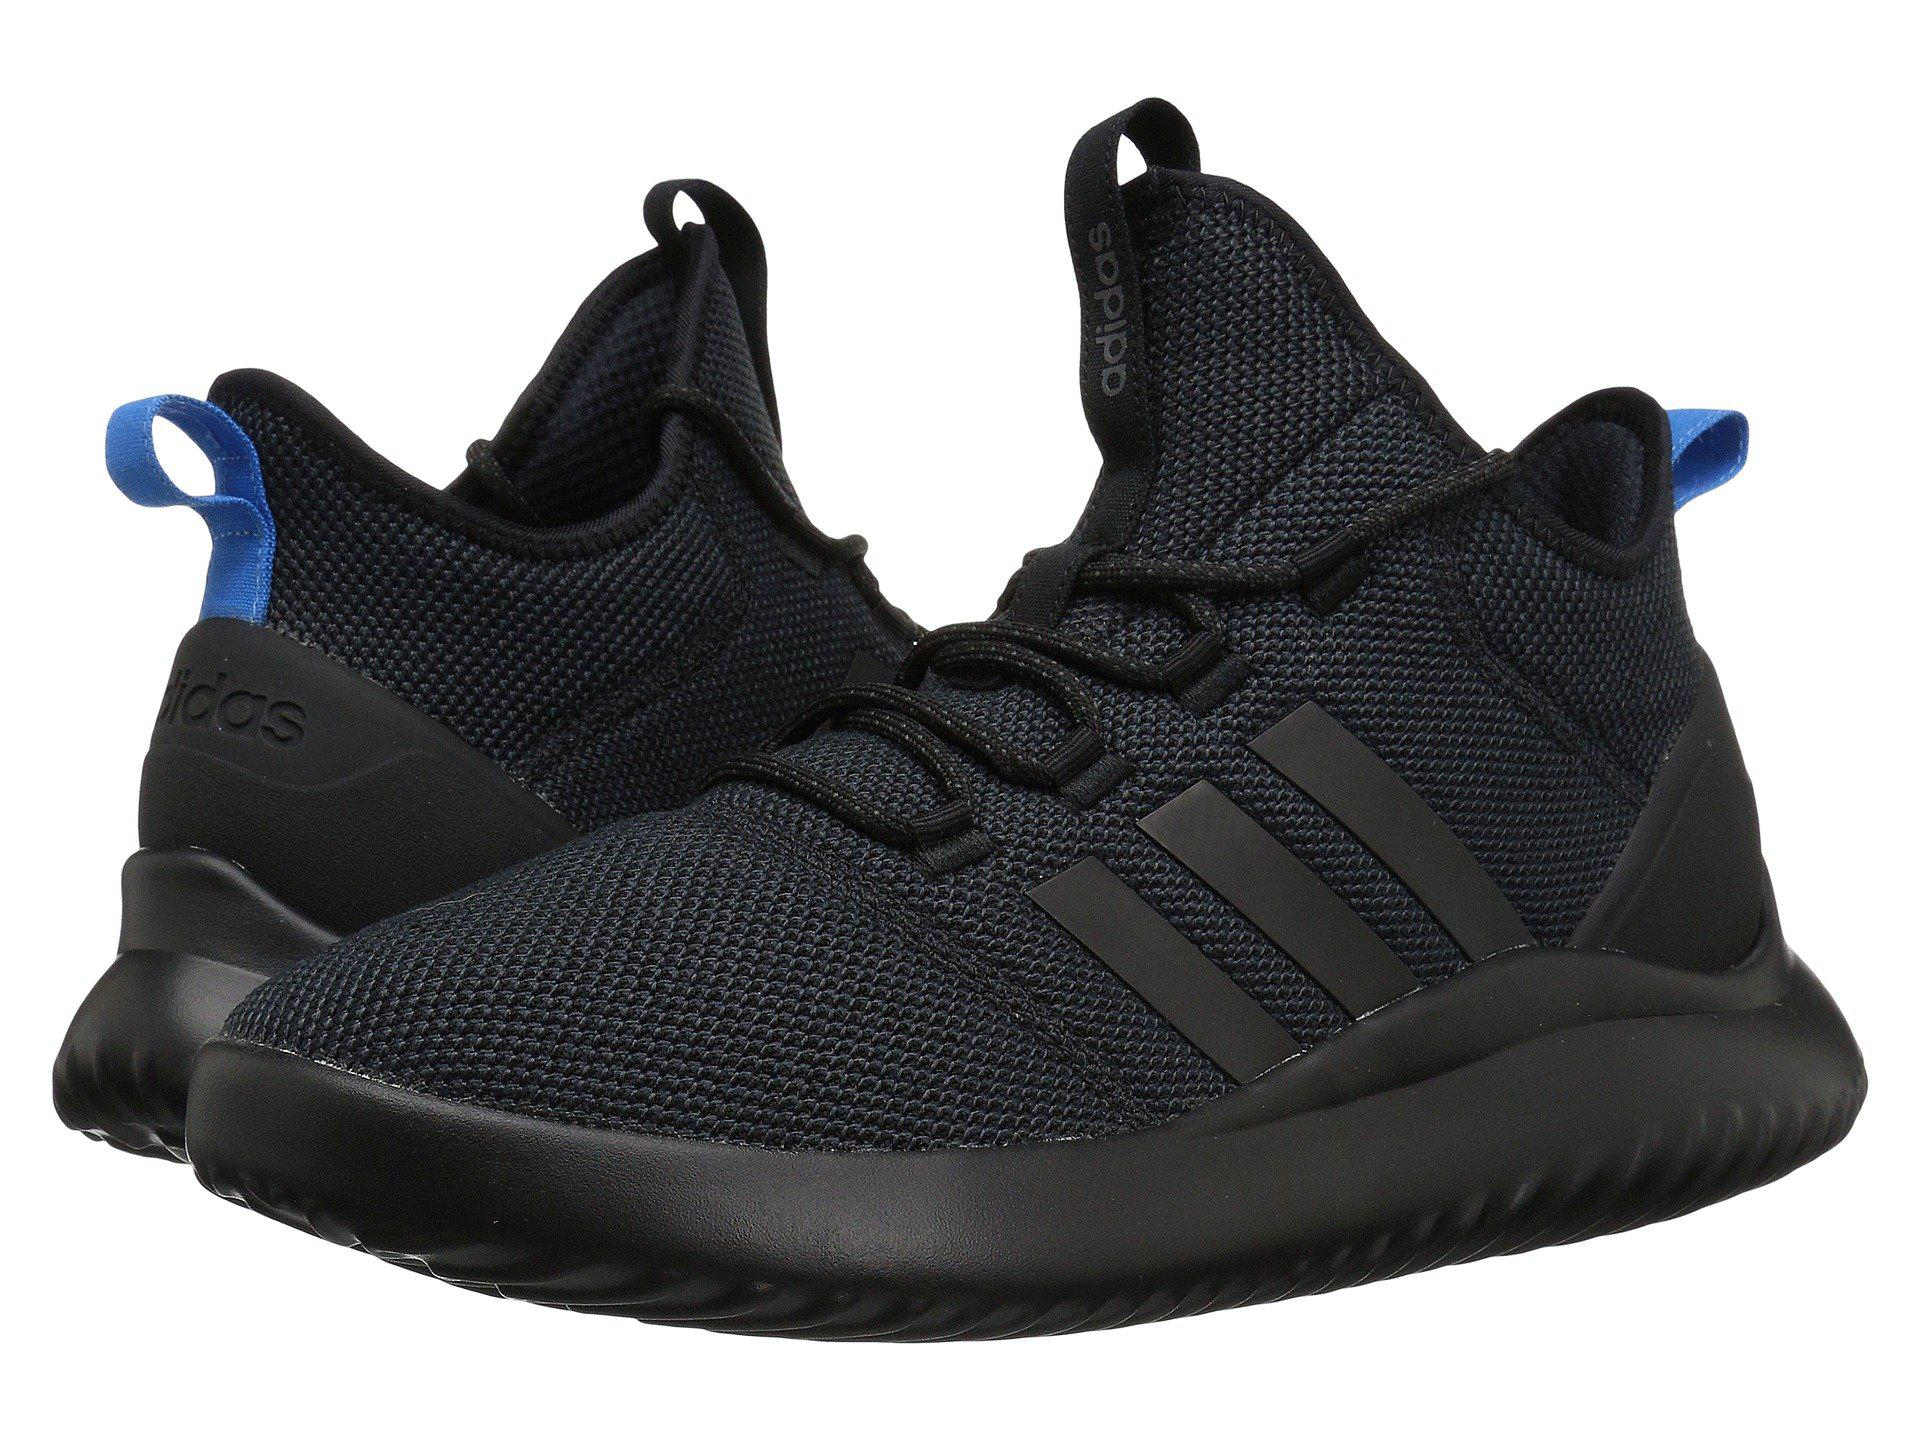 quality design 22945 c8837 Men s Shoes Athletic Shoes Adidas Men s Athletic Sneakers Cloud Foam  Ultimate BBall Running Lace Up Shoes